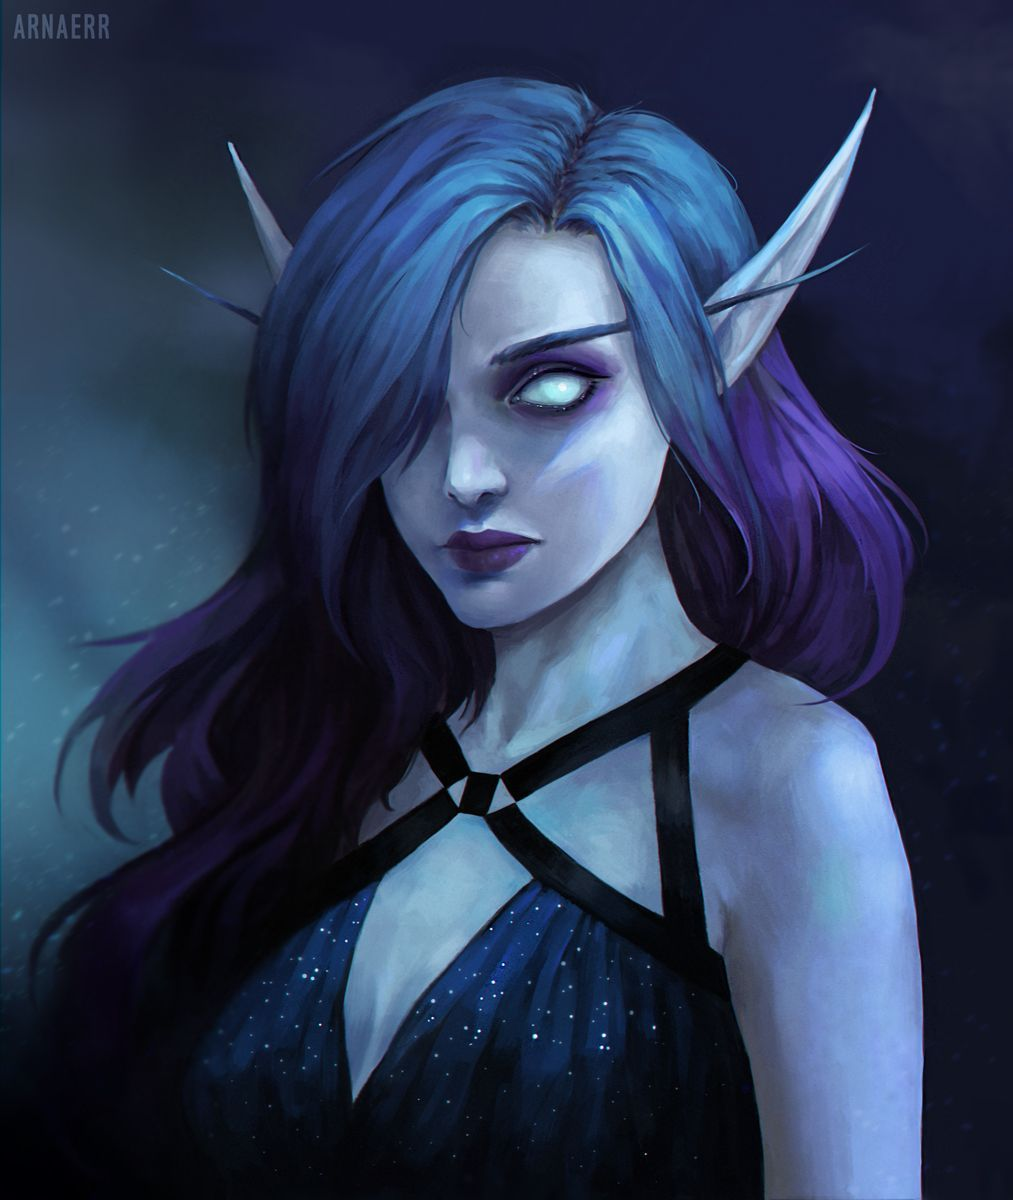 Imagen Relacionada Elf Art Dark Fantasy Art Warcraft Art